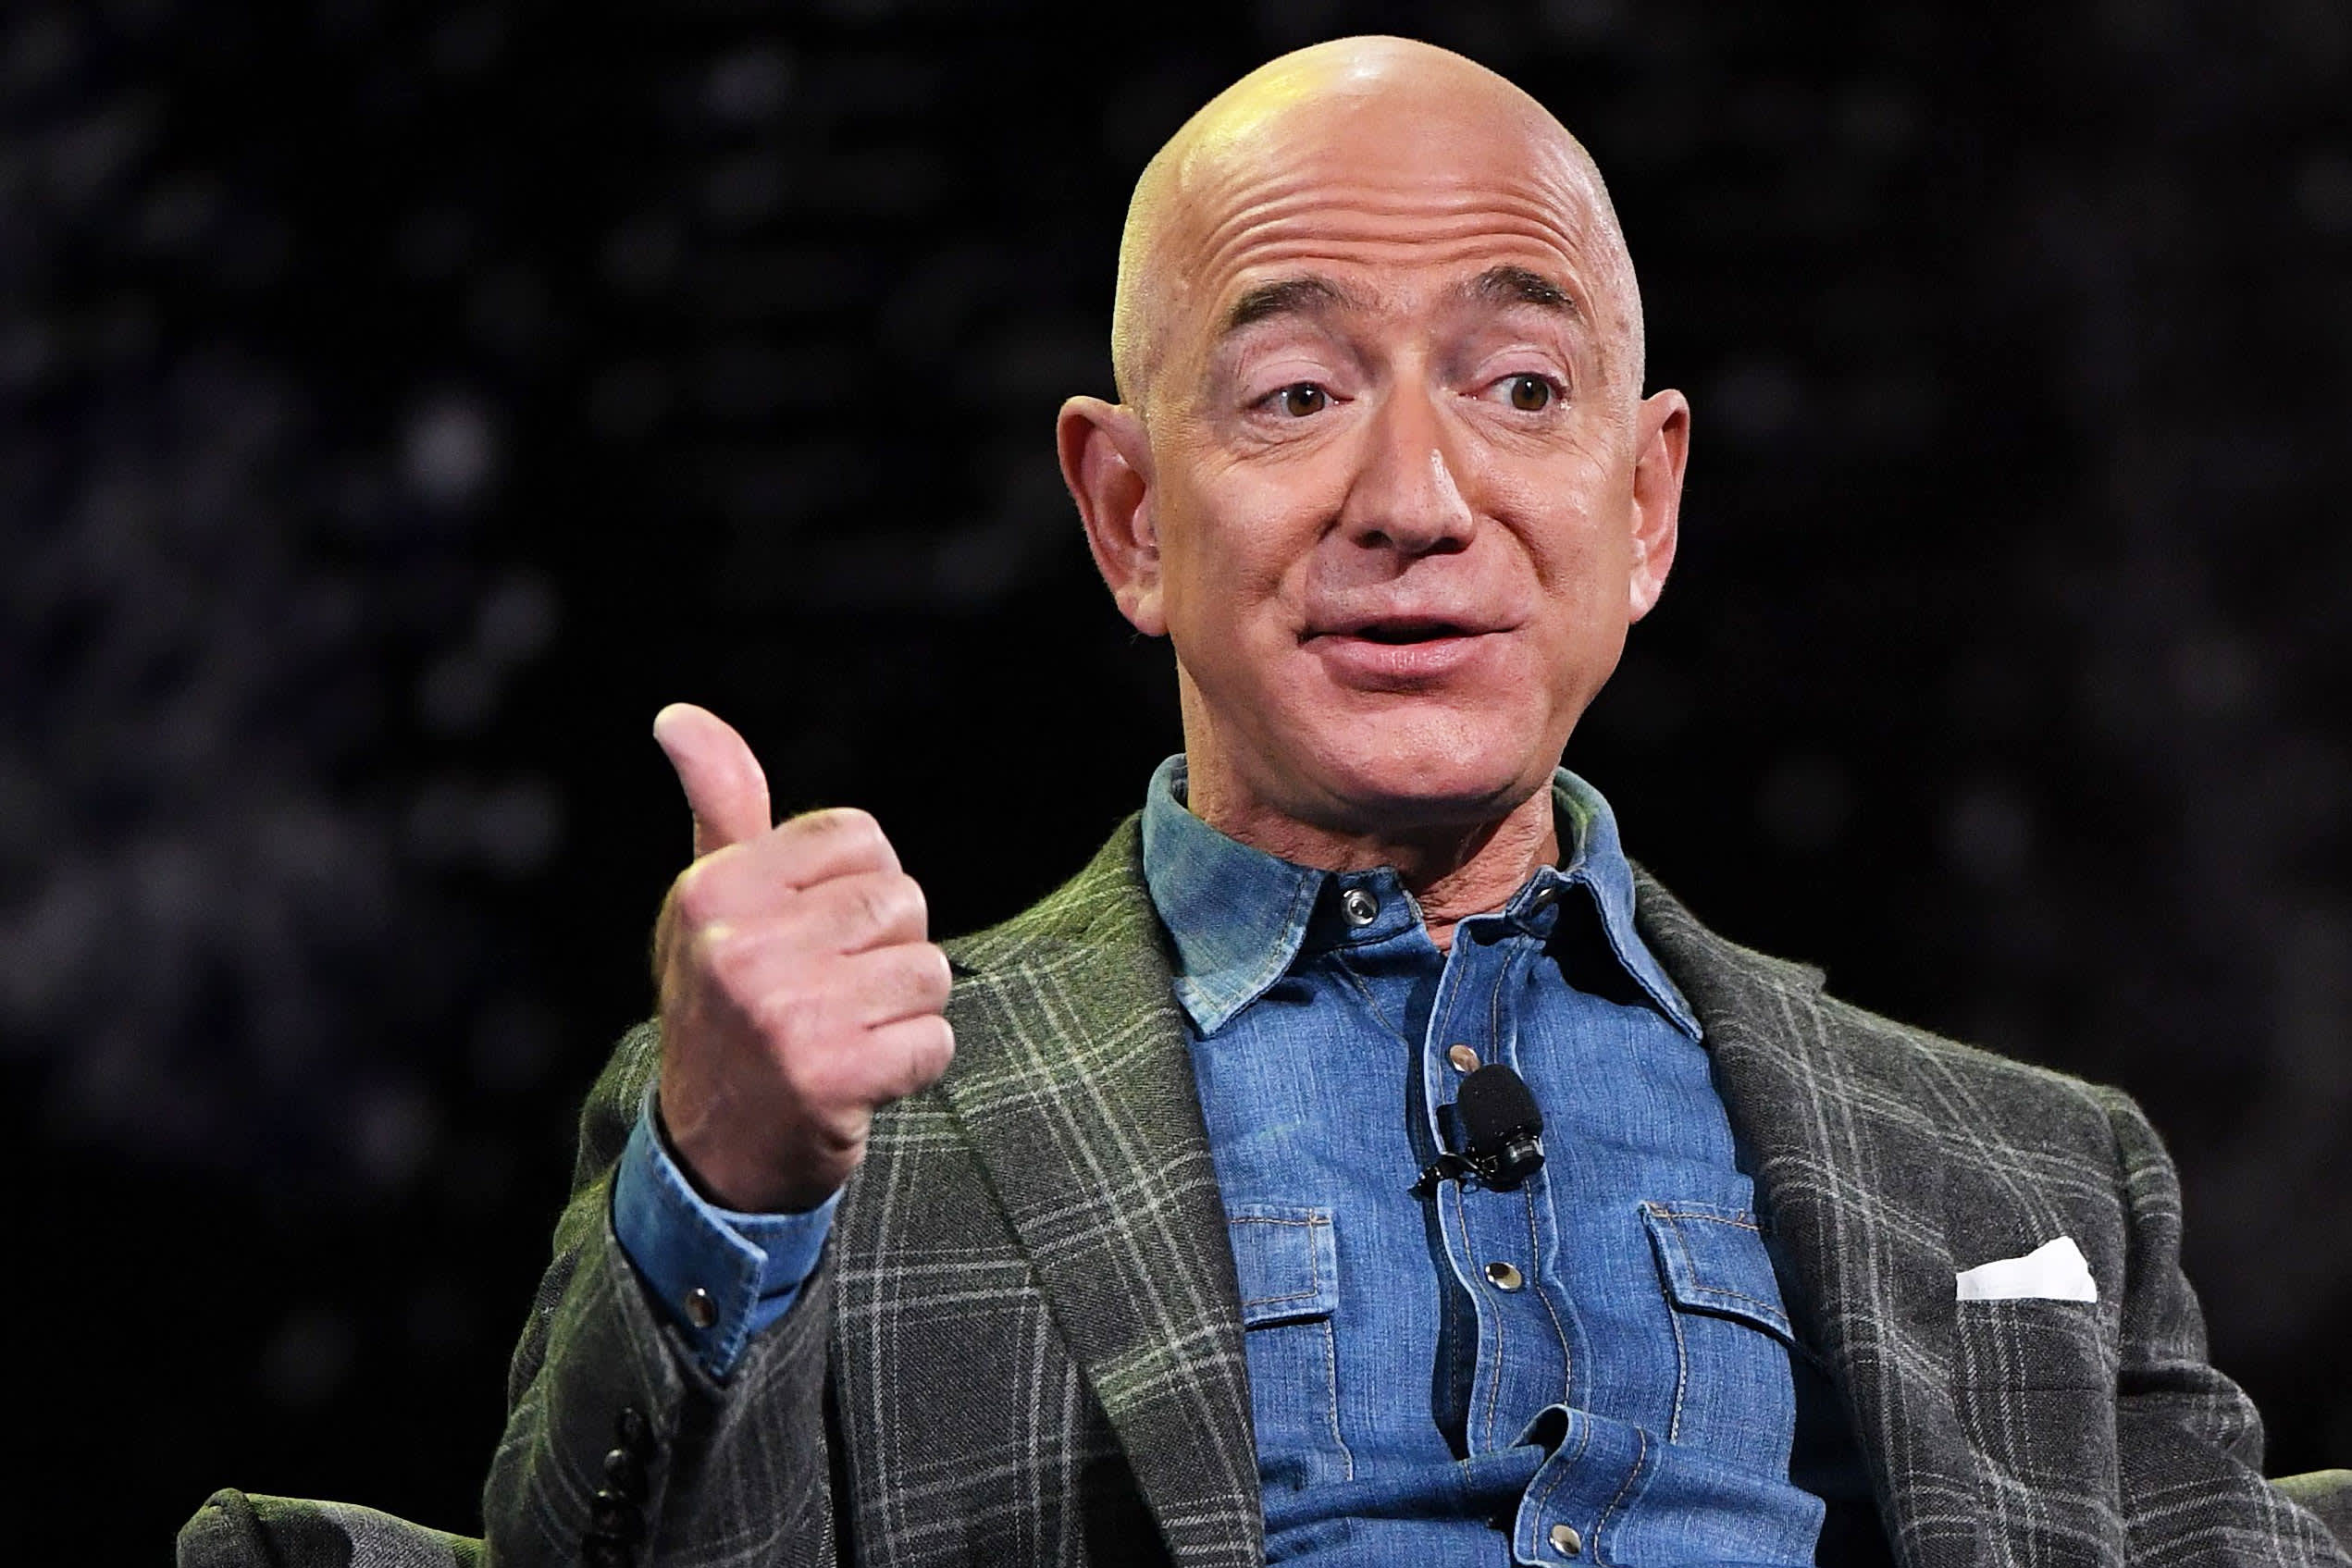 One bright spot in Amazon's ugly quarter — its advertising business is growing like crazy